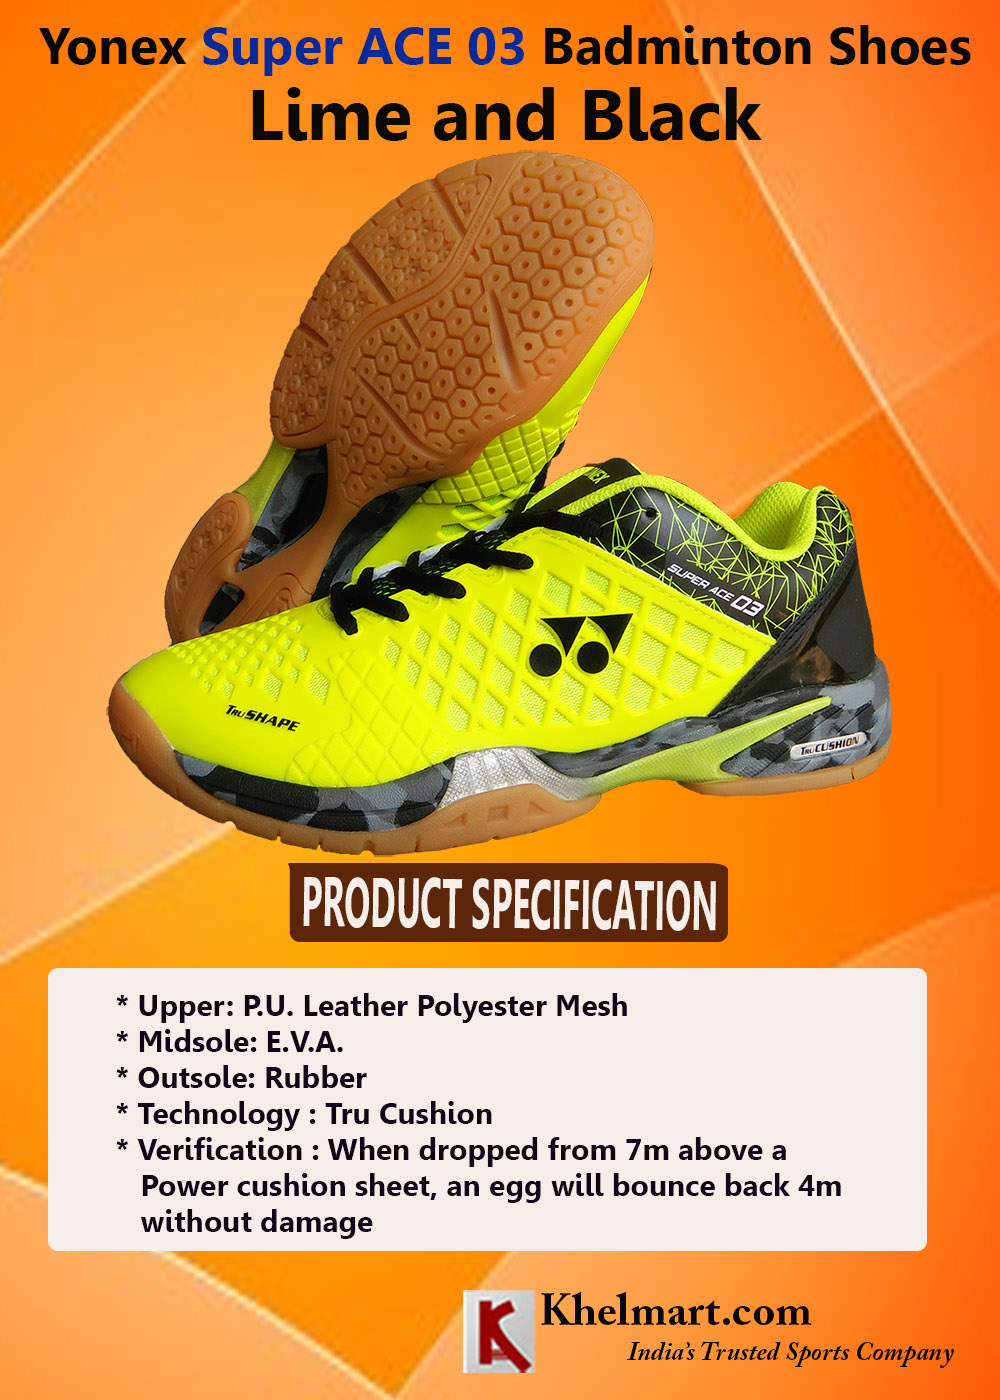 Yonex-Super-ACE-03-Badminton-Shoes-Lime-and-Black_2.jpg